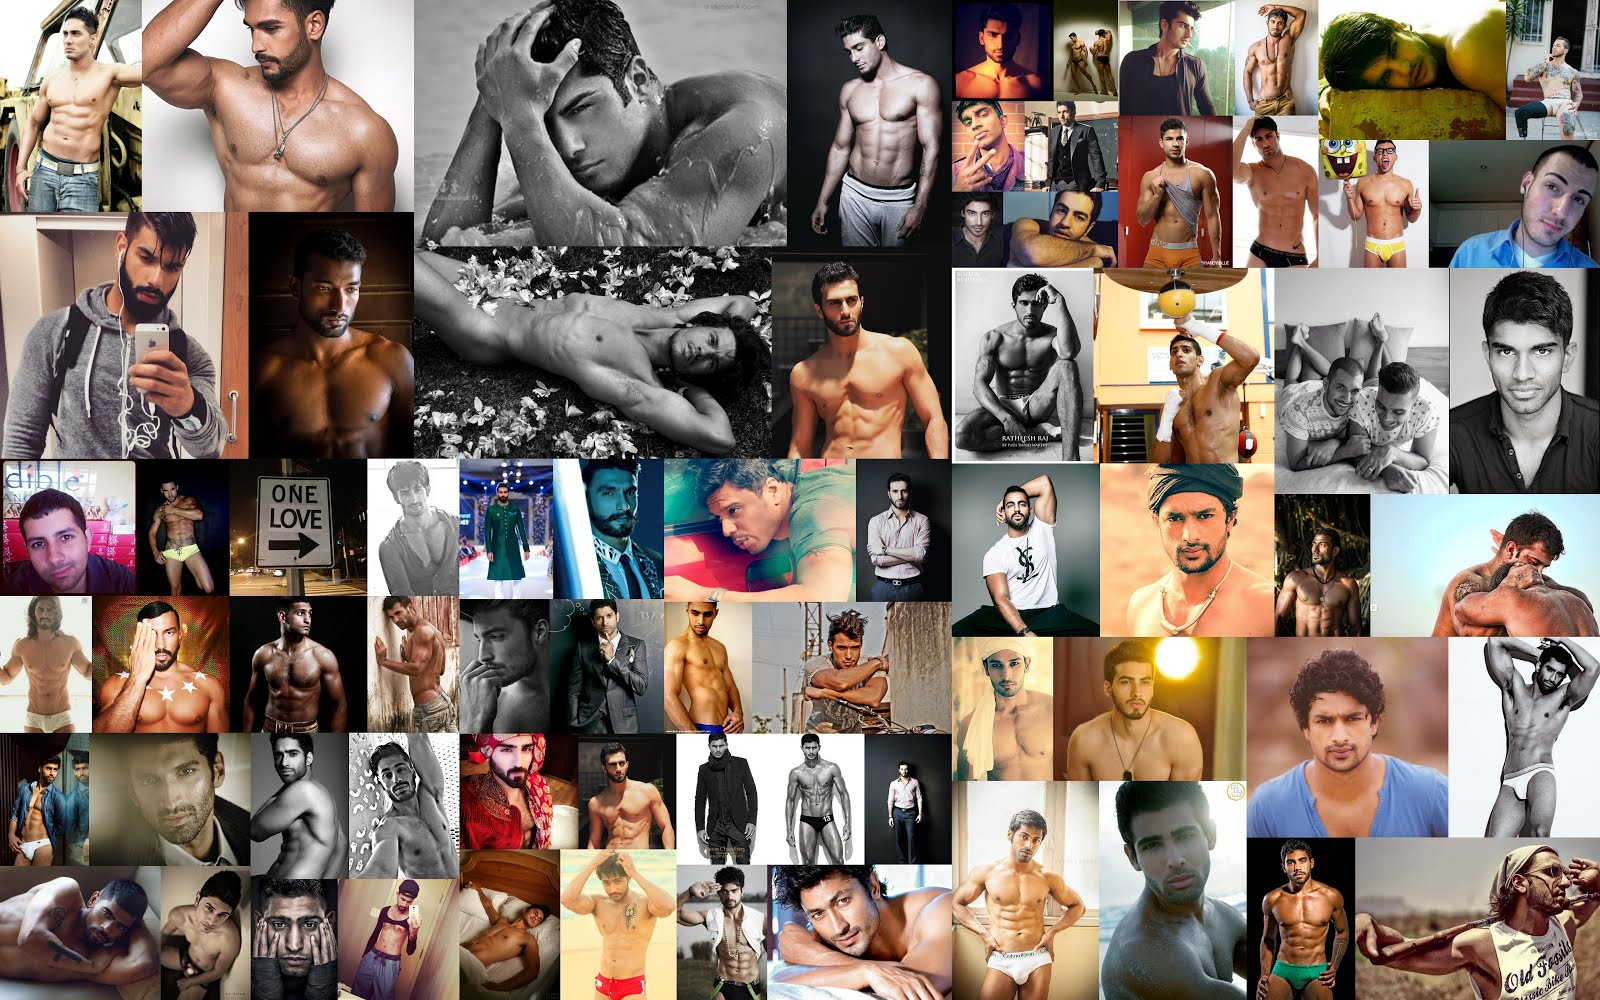 Shirtless South Asian Men